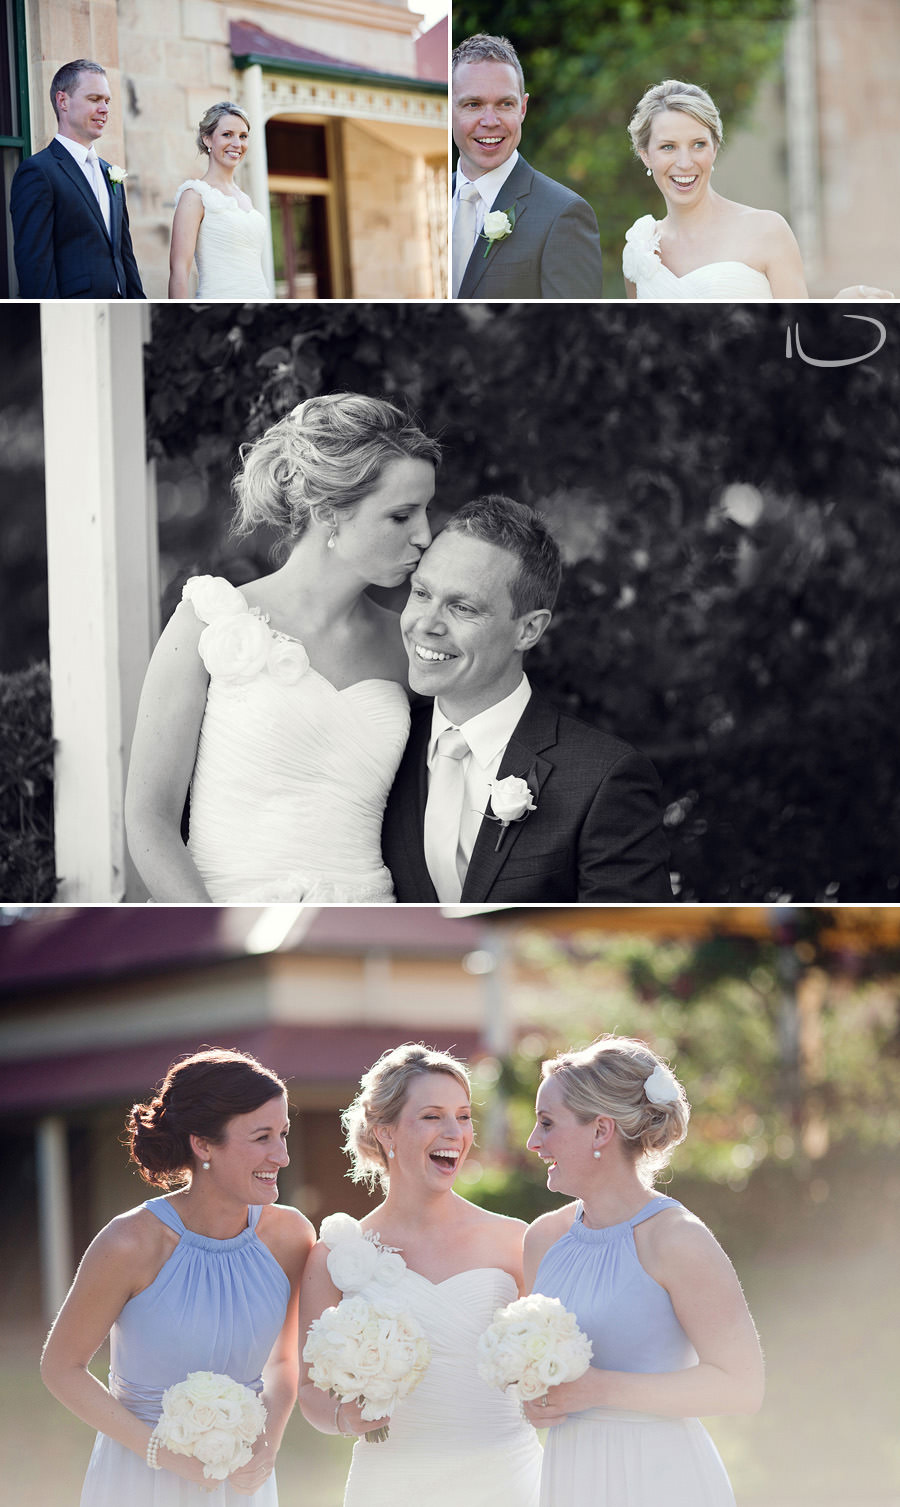 Duntroon Wedding Photographer: Bride & bridesmaids